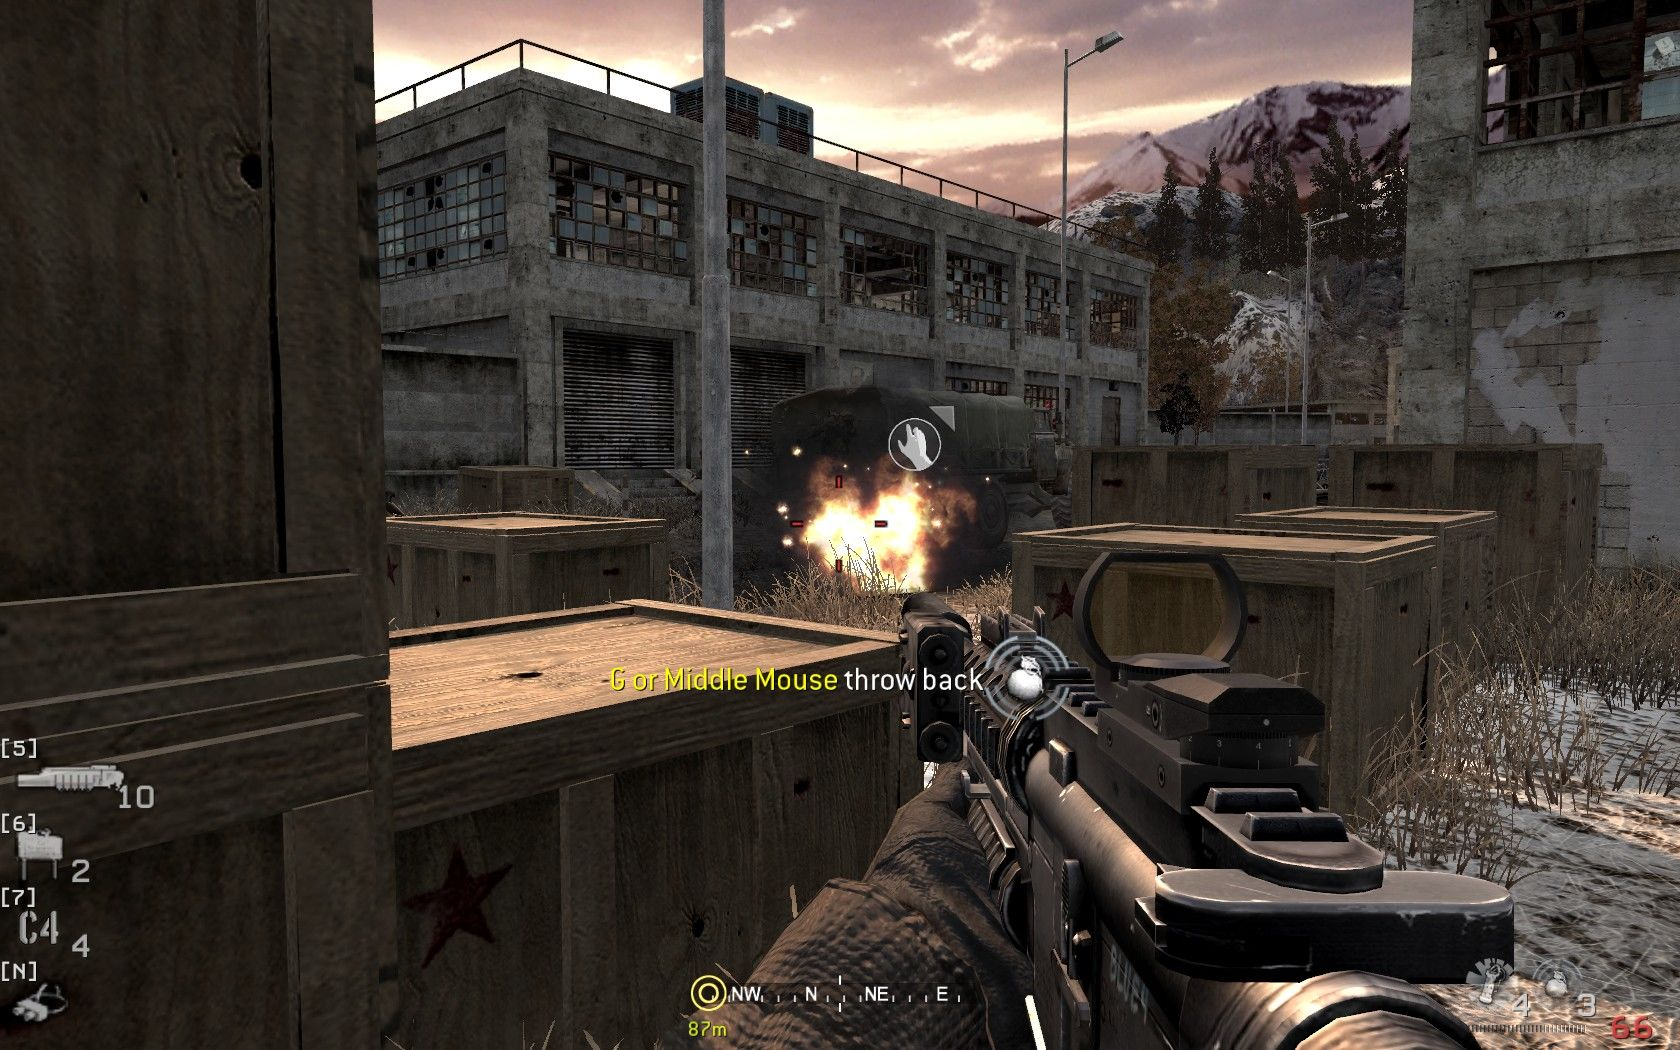 Call of Duty 4: Modern Warfare Windows And if the grenade is too close, you can grab it and throw back.